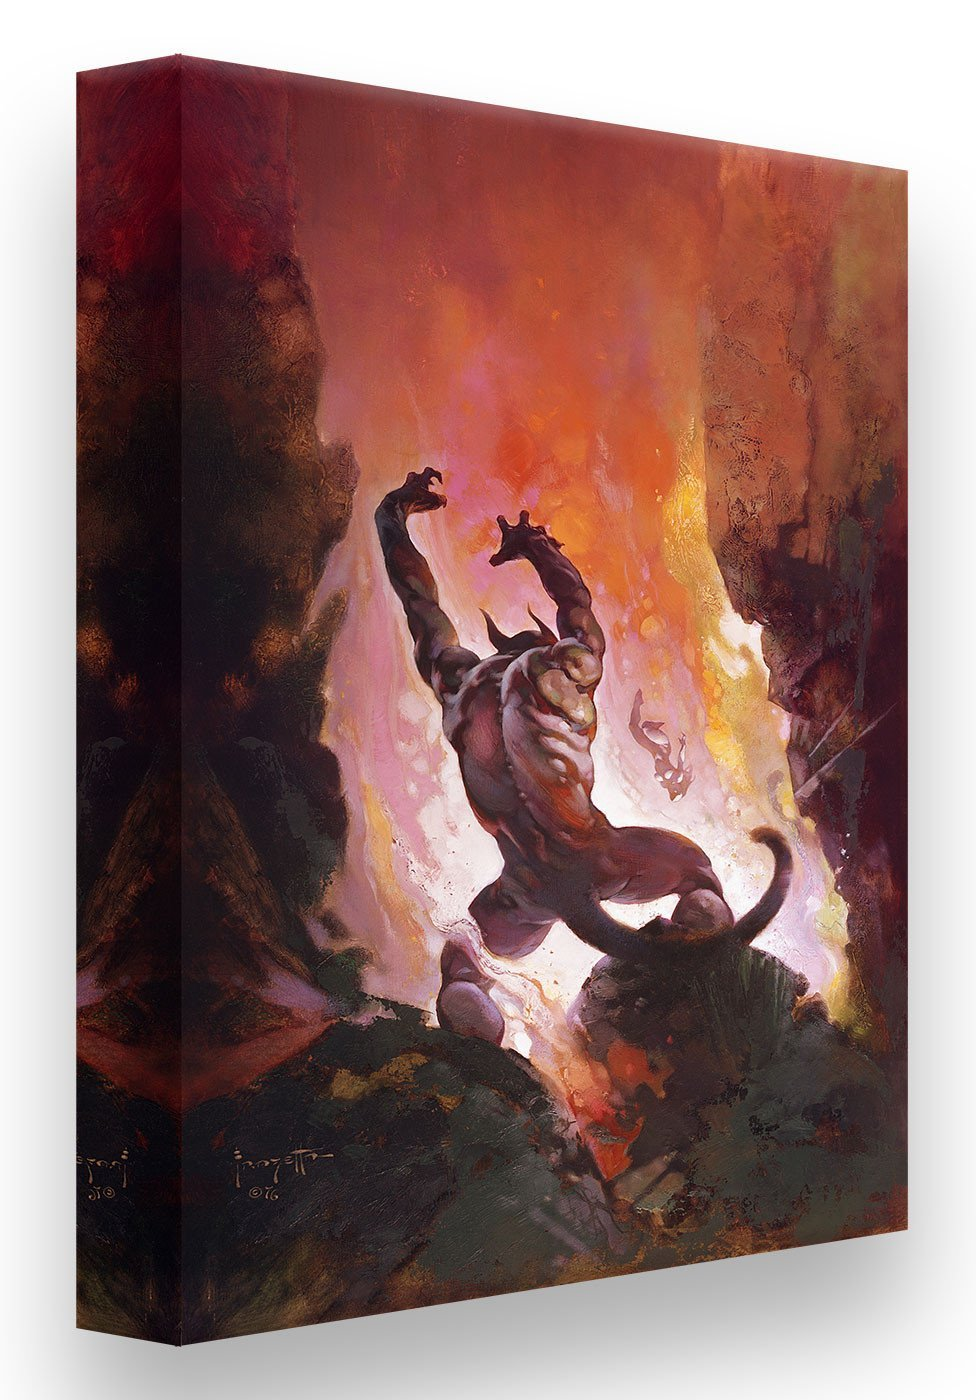 FrazettaGirls Art Print Canvas / Rolled / 18x24 Fire Demon Print